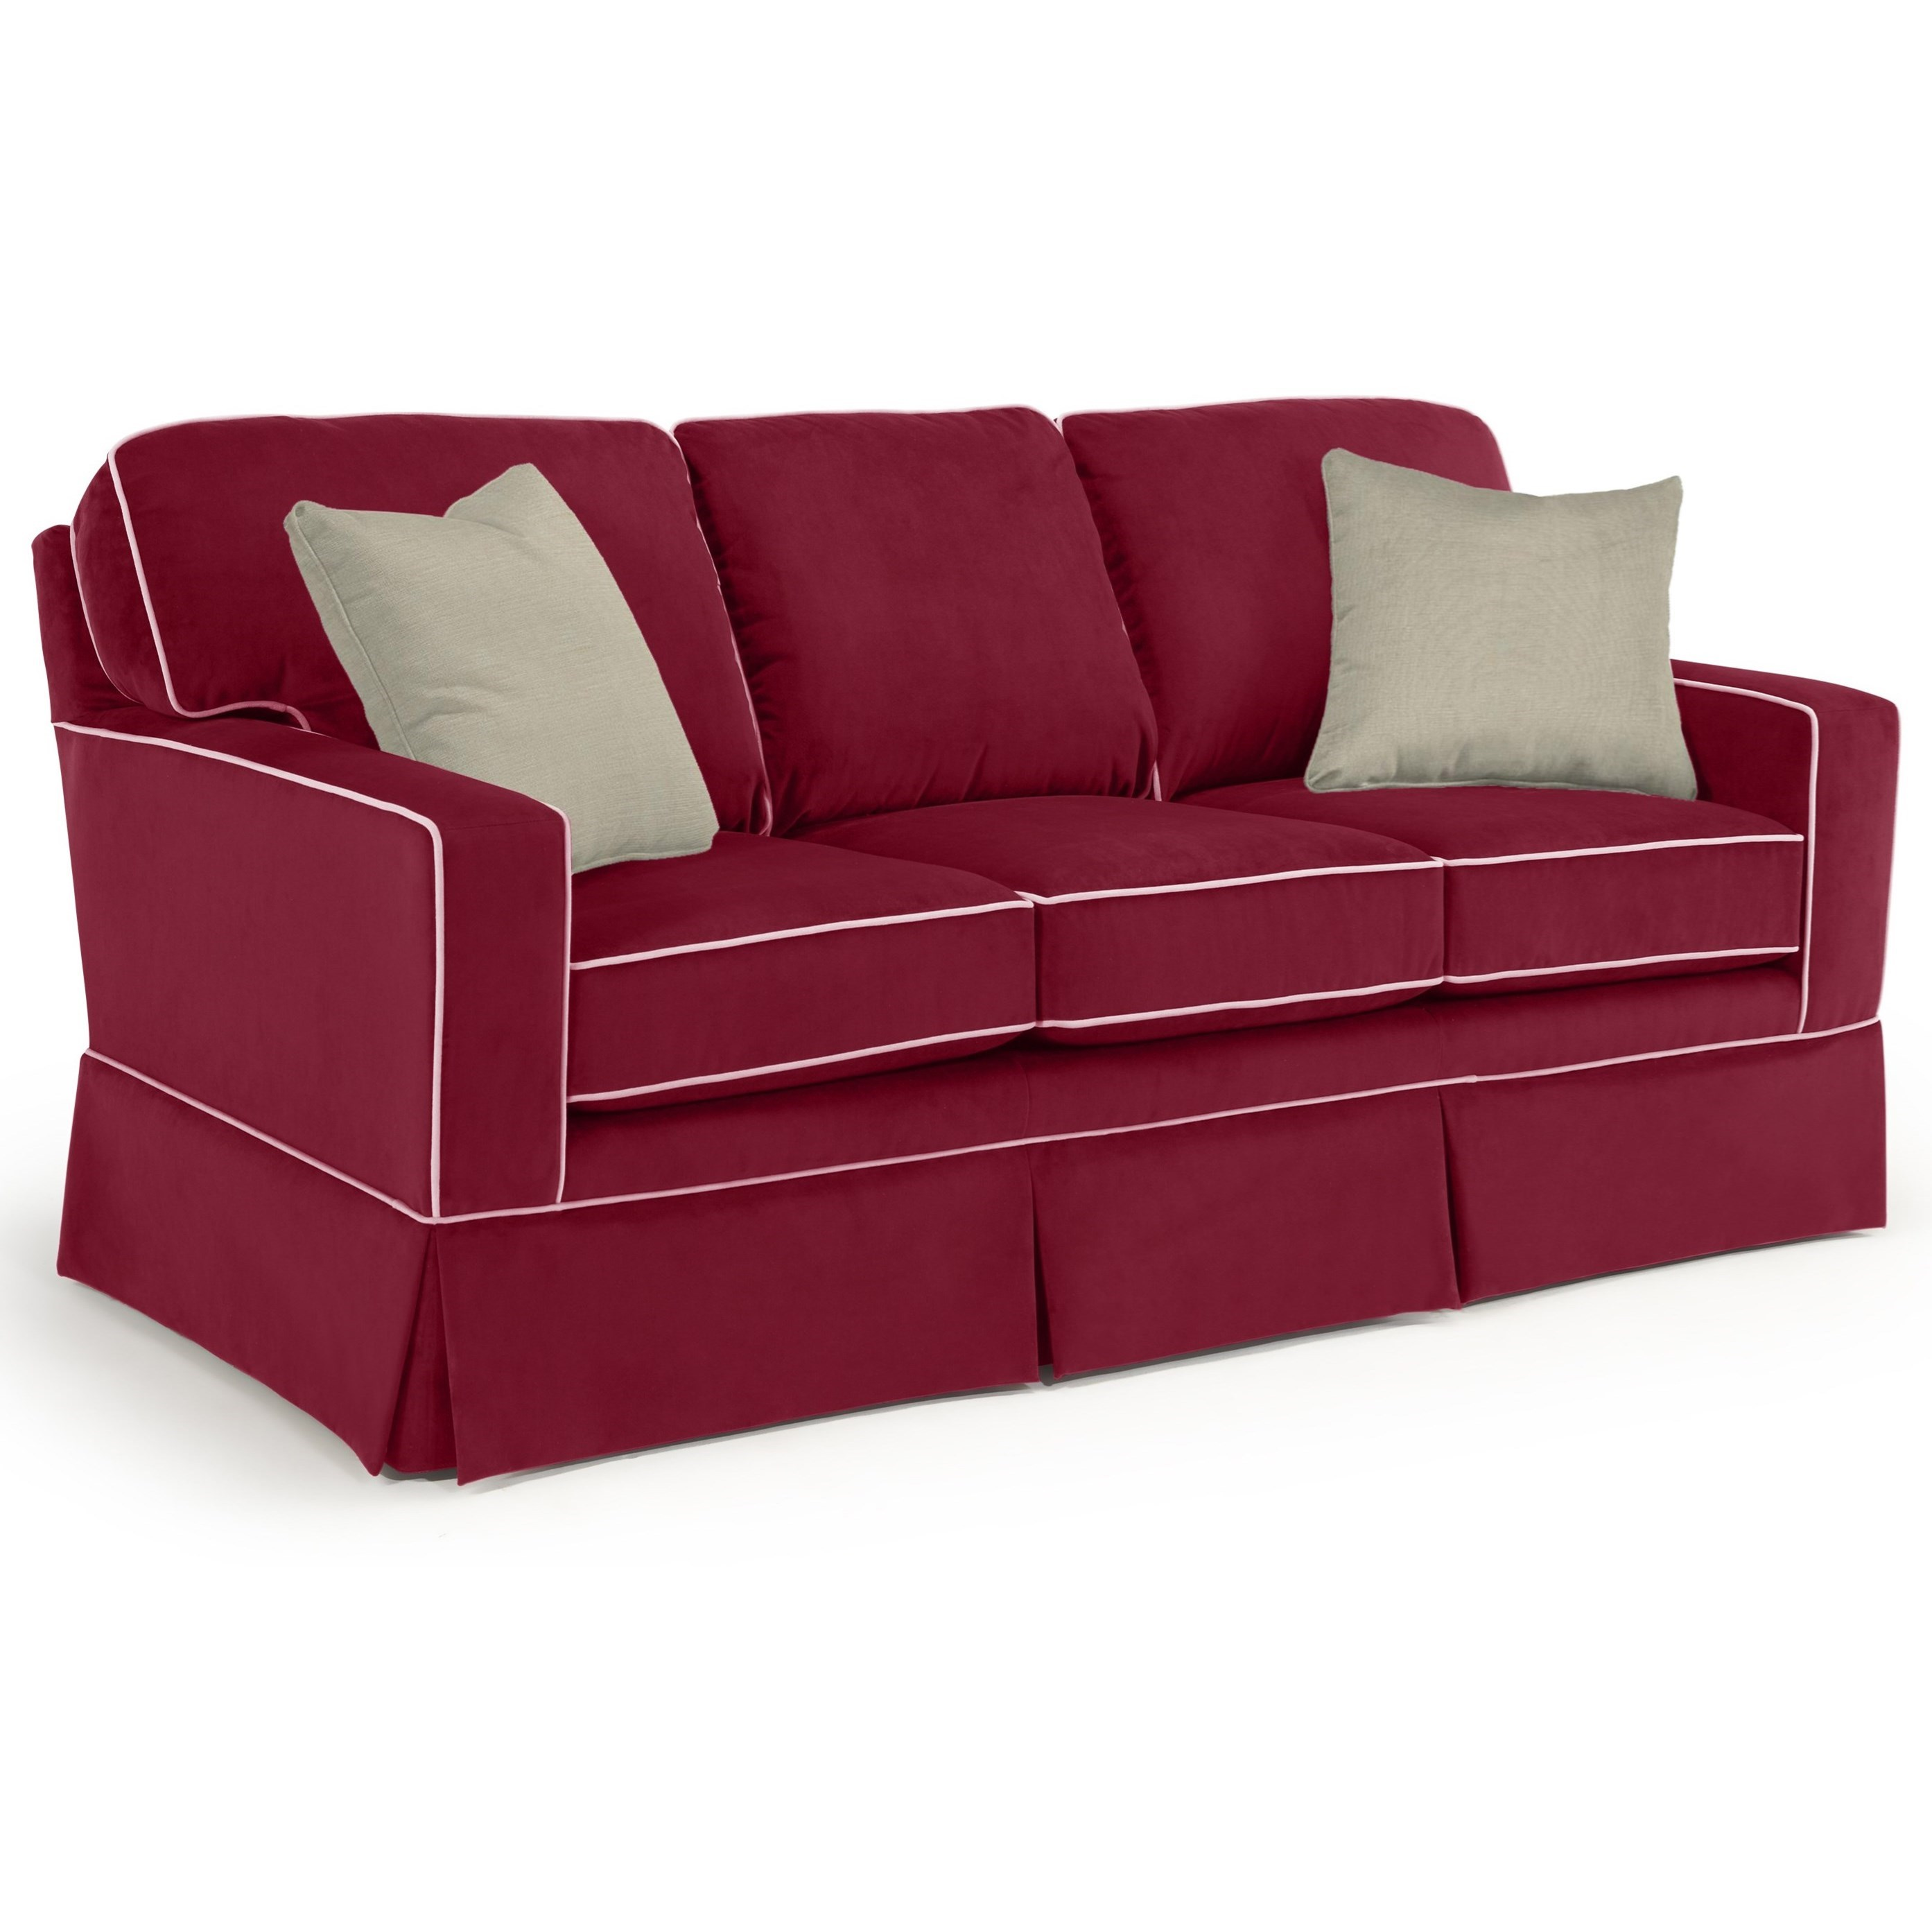 Best Home Furnishings Annabel  <b>Custom</b> 3 Over 3 Sofa - Item Number: 152253067-21278